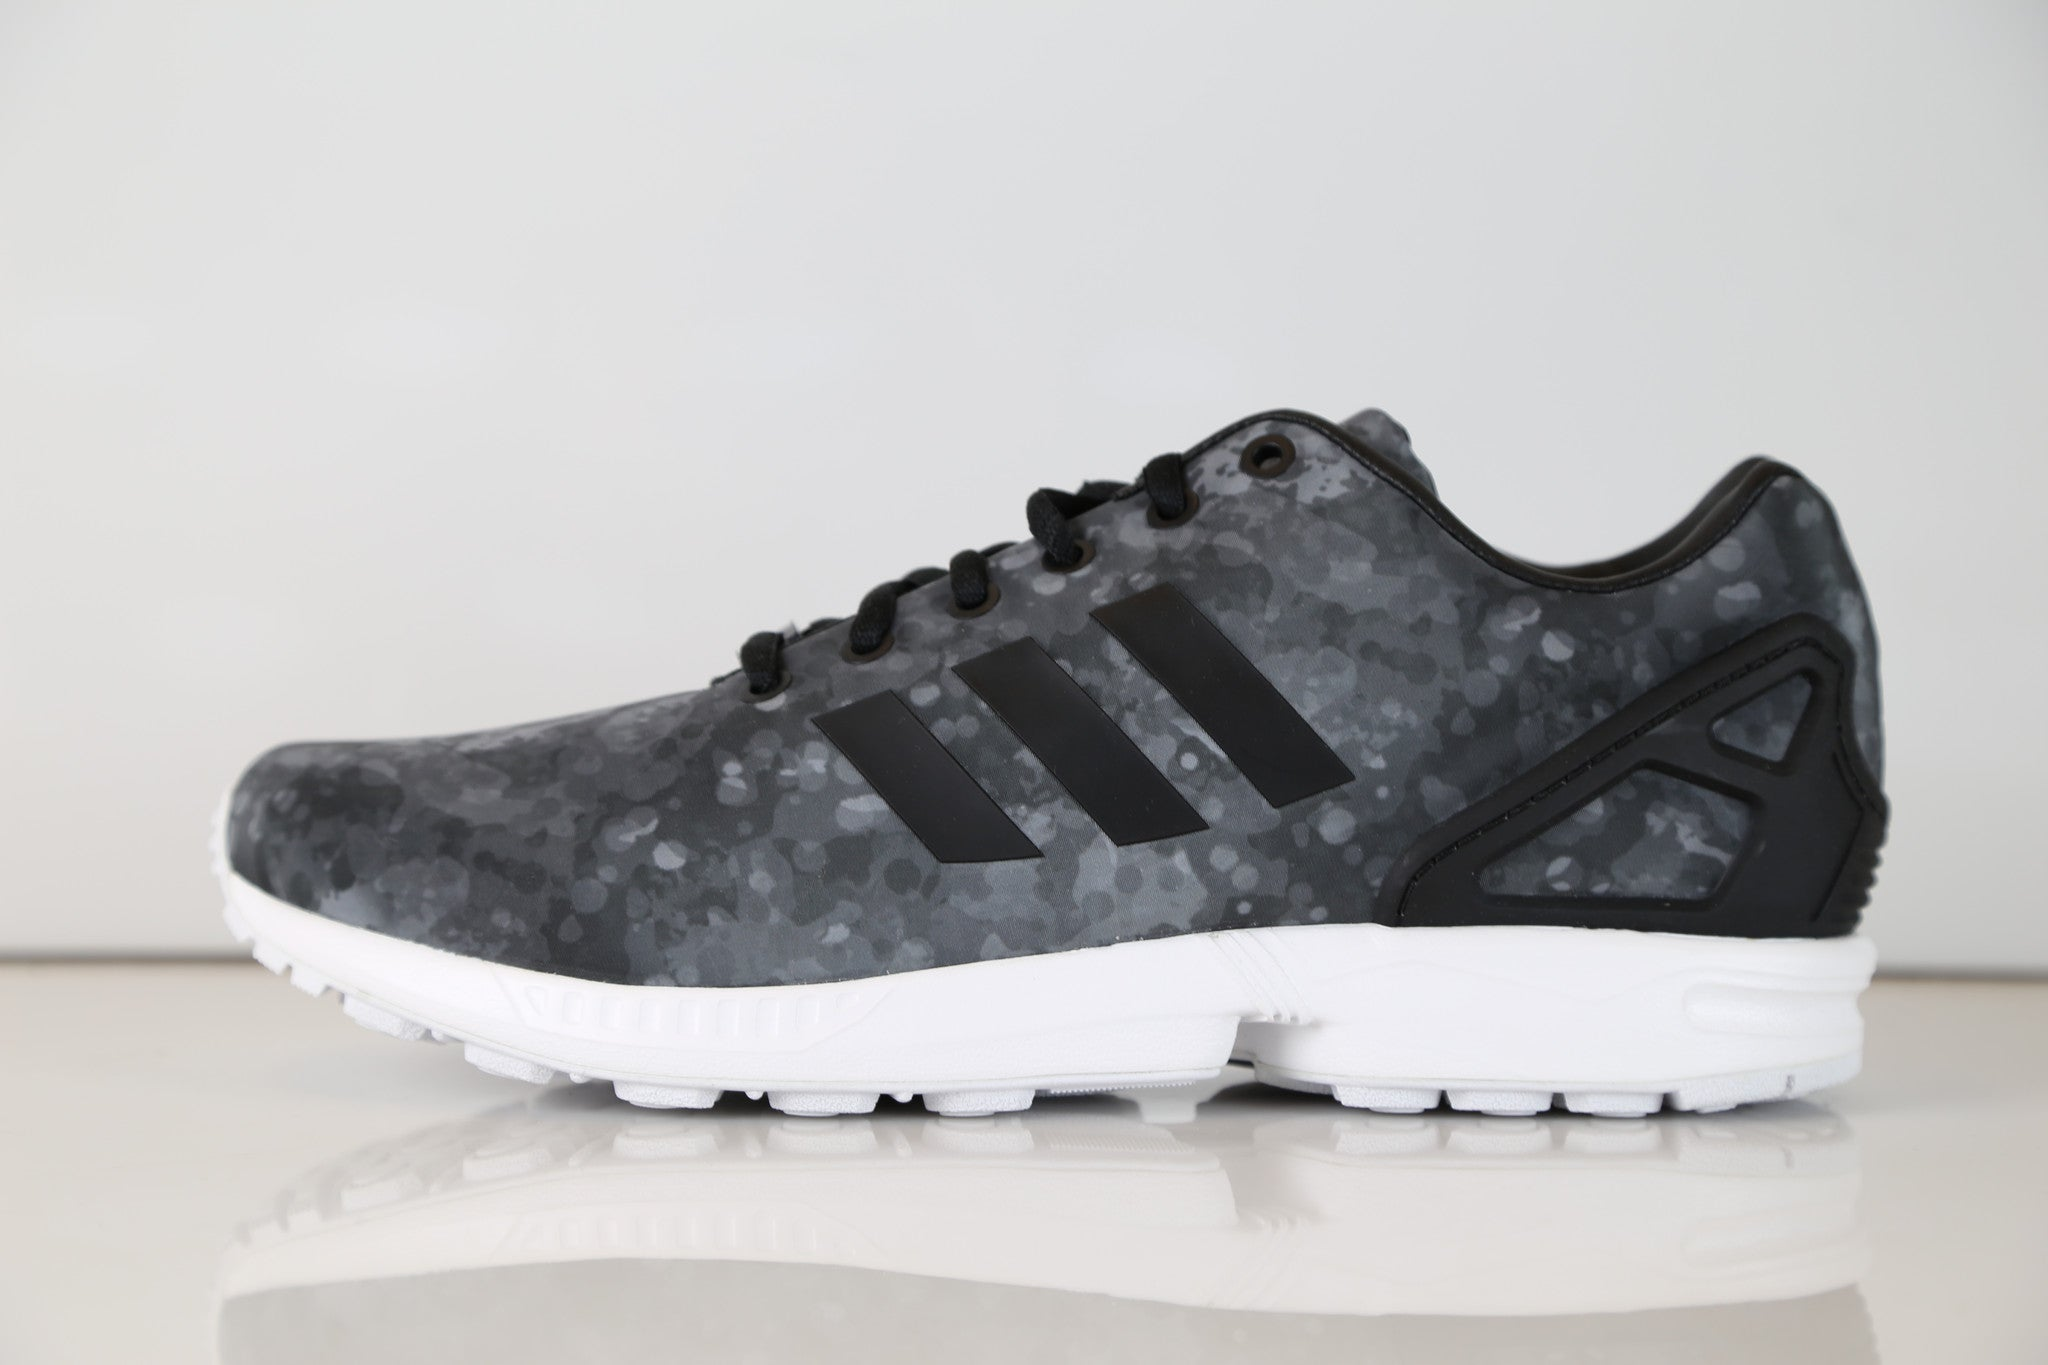 522db2771 Adidas Consortium X White Mountaineering ZX Flux WT Camo Black Grey ...